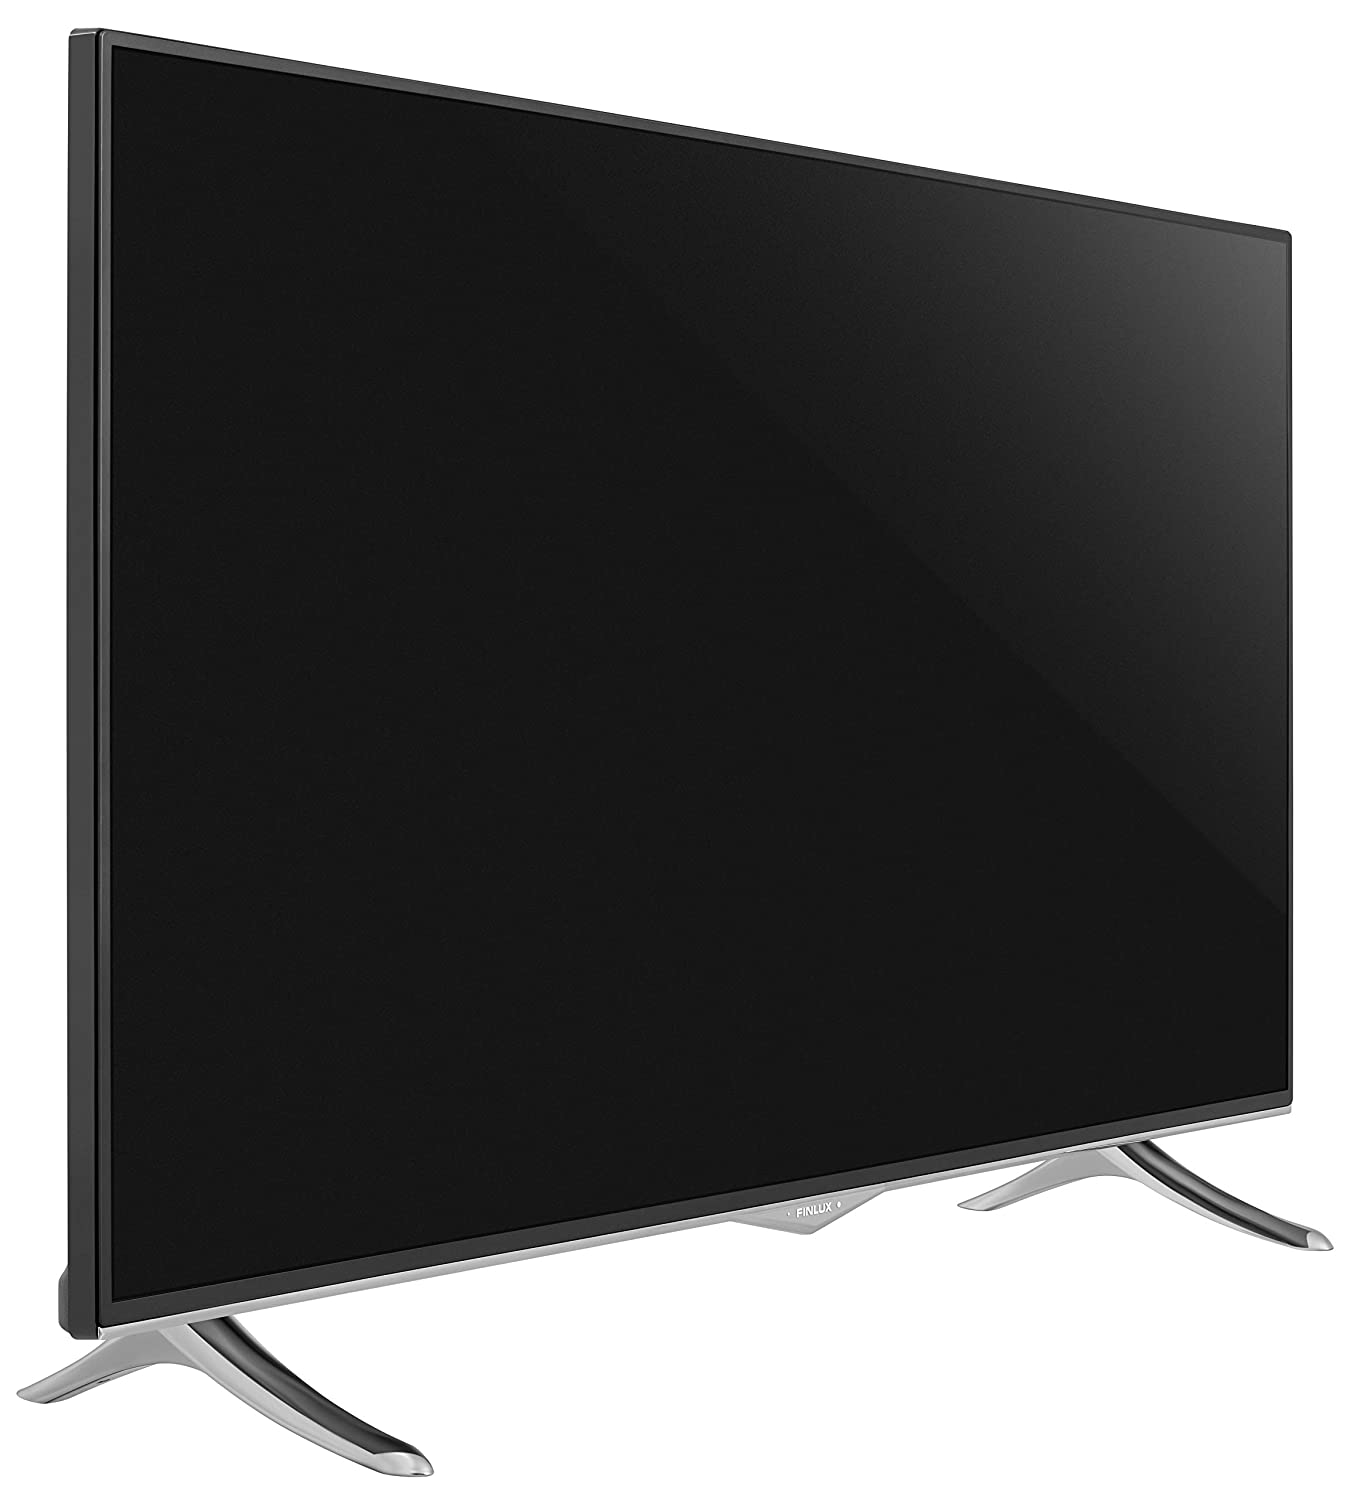 Finlux 49-FUD-8020 49 Inch Smart 4K Ultra-HD HDR LED TV with Freeview Play Black//Chrome 2019 Model